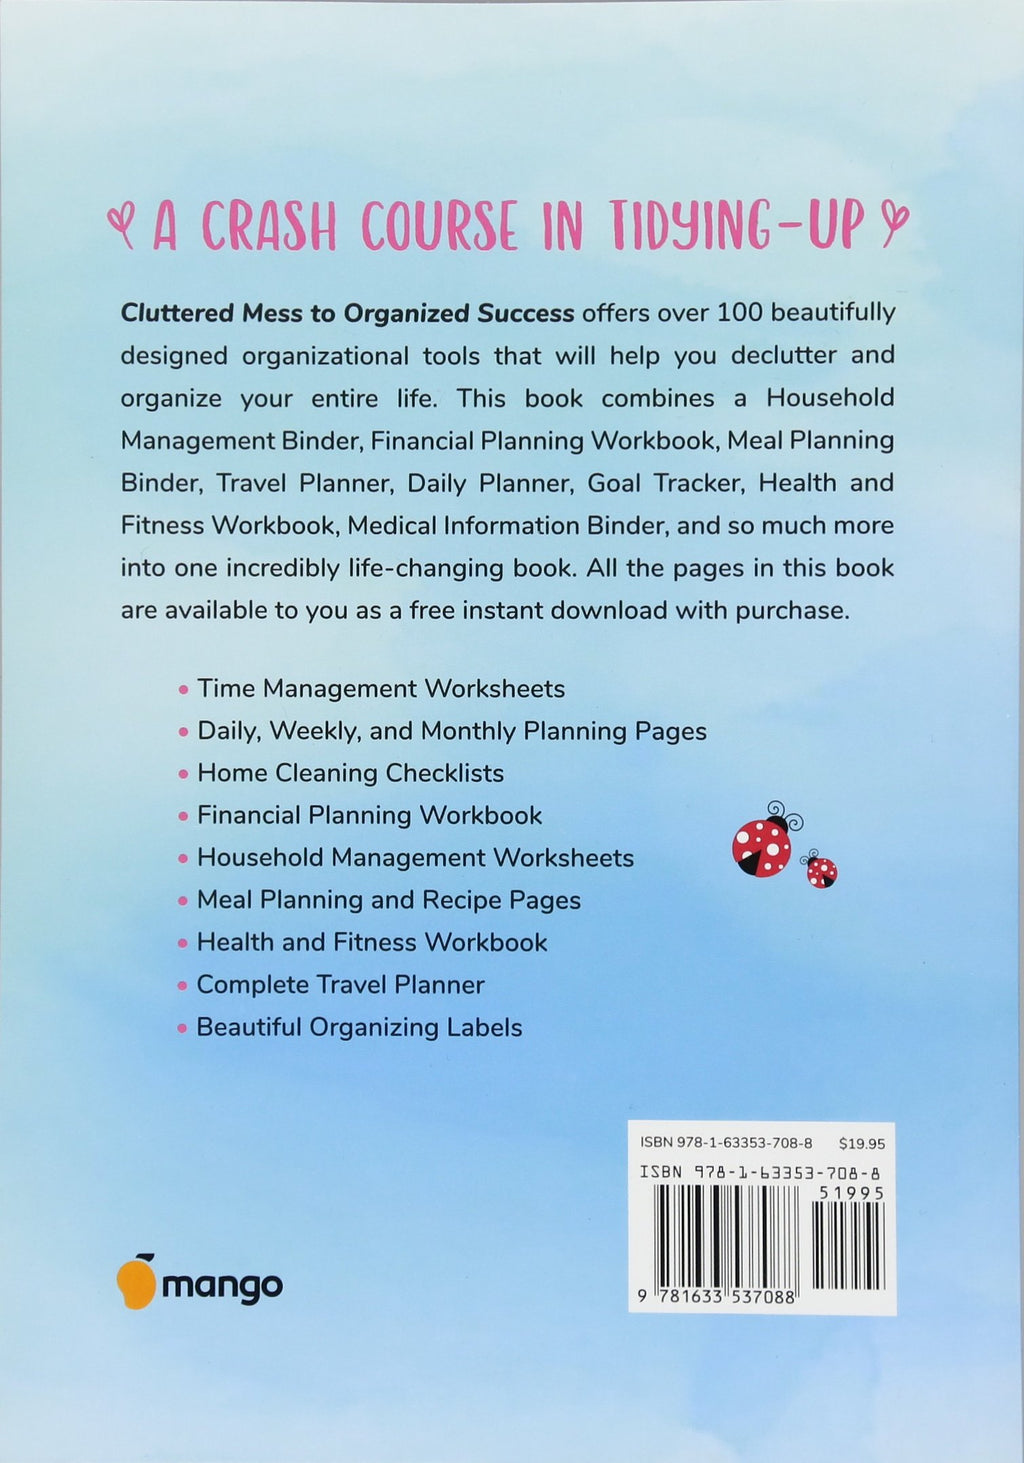 Cluttered Mess to Organized Success Workbook by Cassandra Aarssen